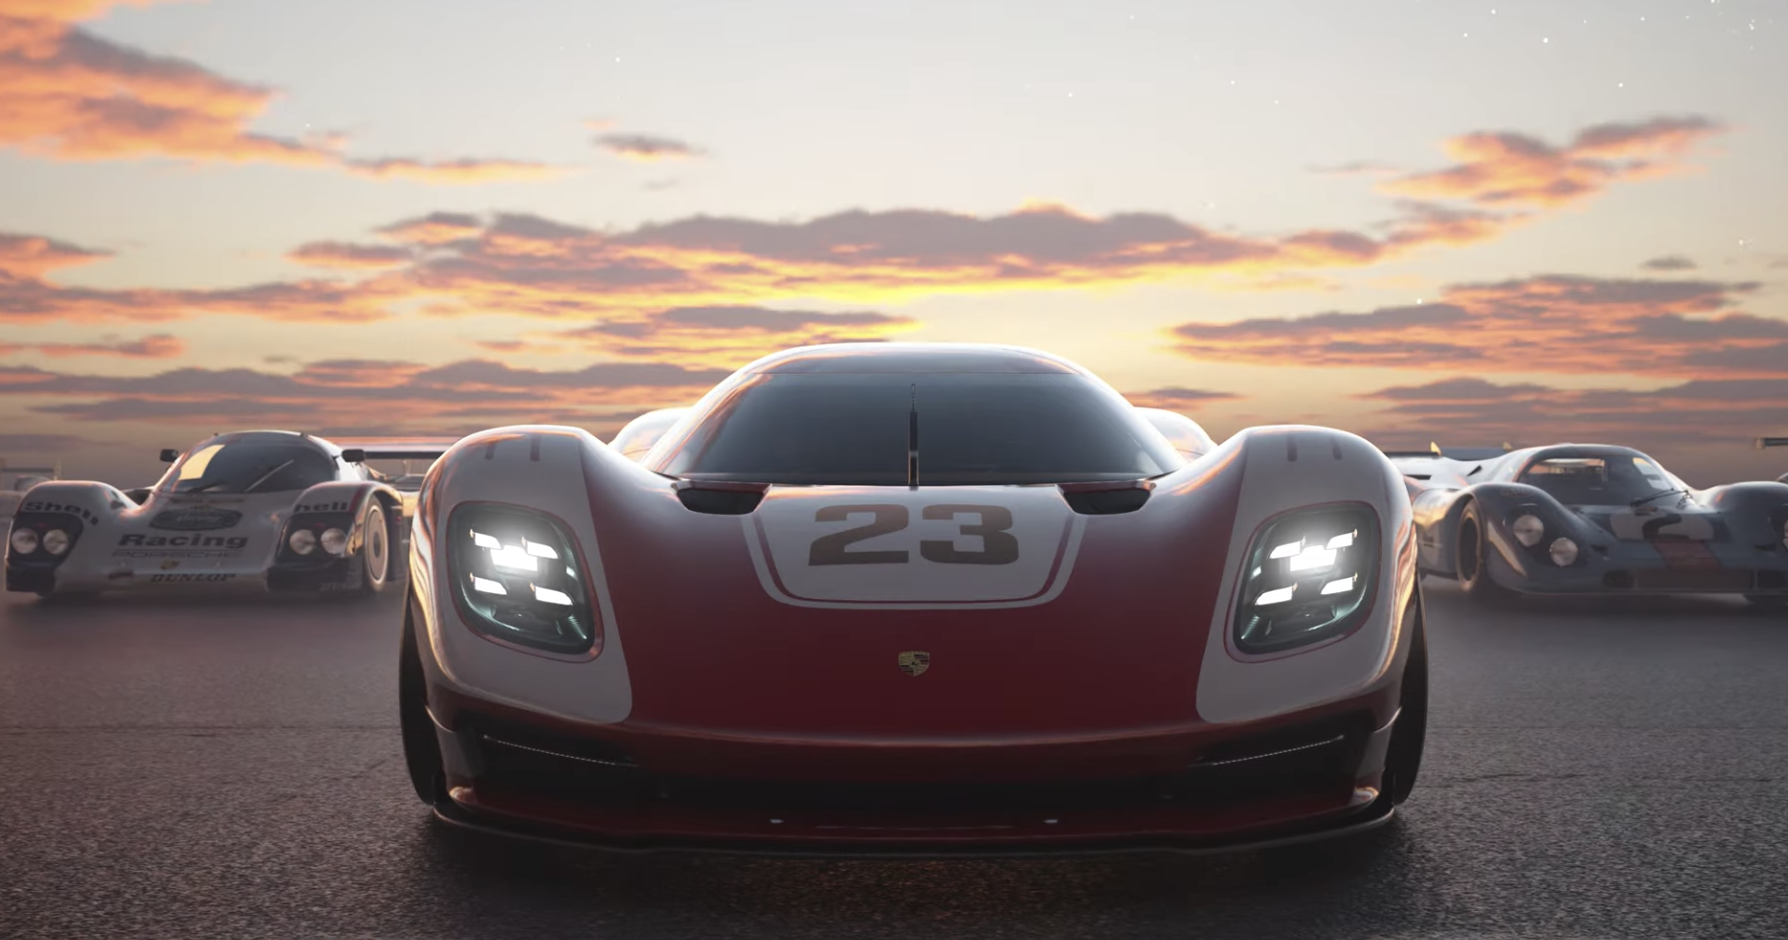 Gran Turismo 7 revealed at the PlayStation Showcase - CNET